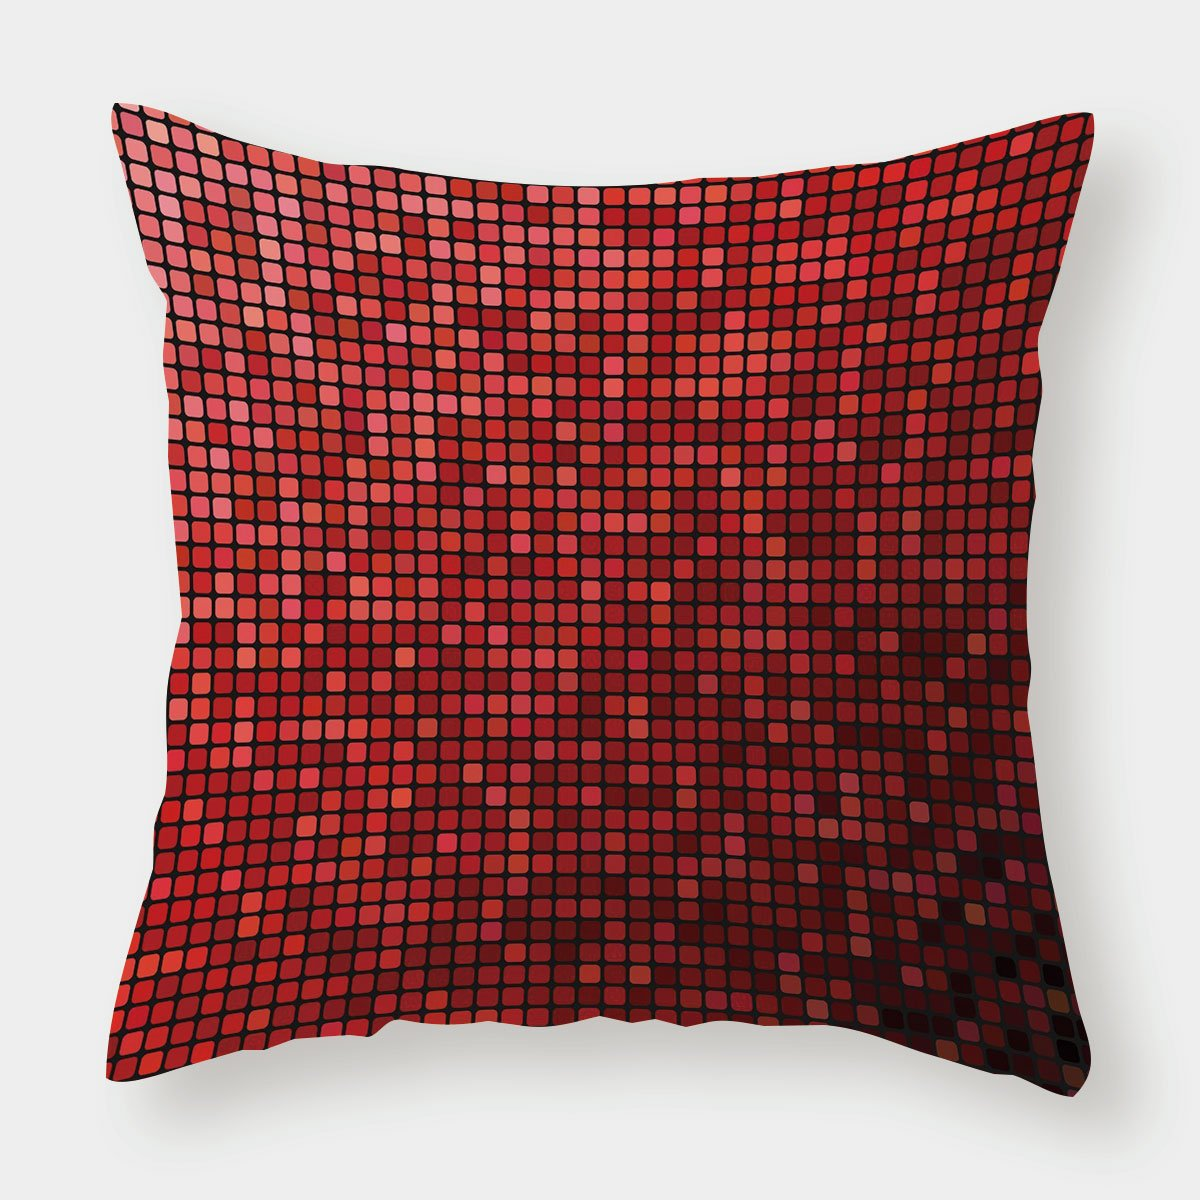 iPrint Satin Throw Pillow Cushion Cover,Maroon,Abstract Mosaic Grid Ombre Pattern Pixels Digital Technology Themed Tile Decorative,Maroon Scarlet Black,Decorative Square Accent Pillow Case